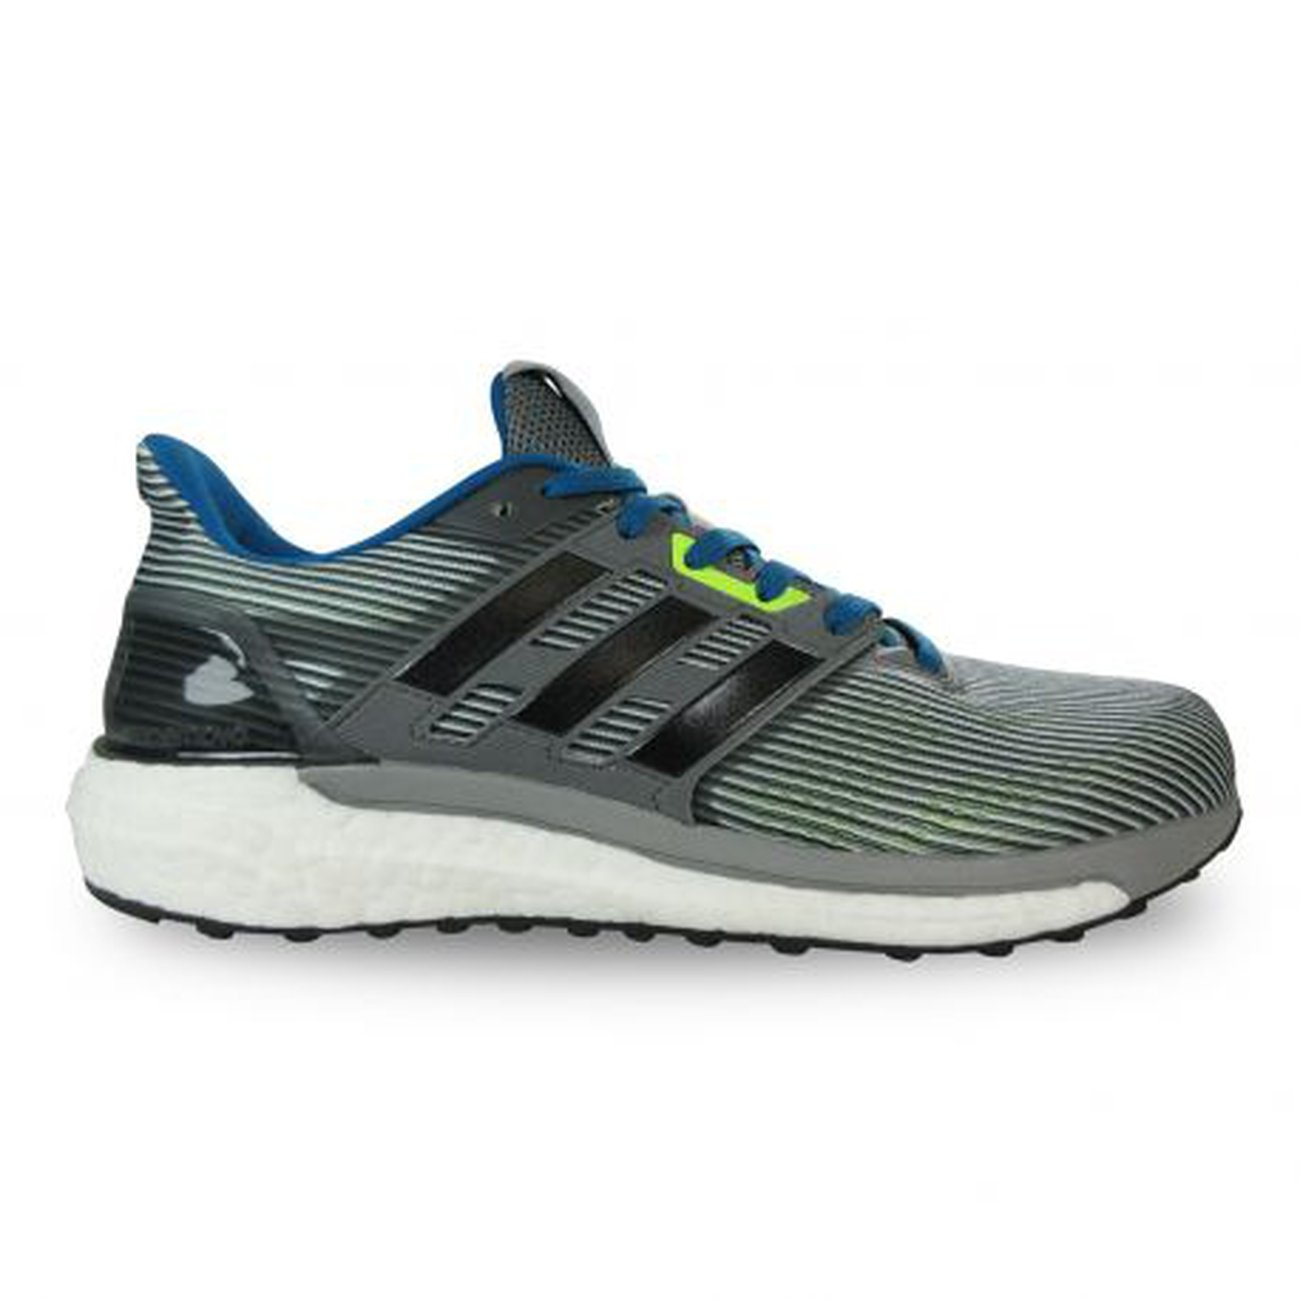 save up to 80% great prices elegant shoes Adidas Supernova Men's Running Shoes | Grey/Blue